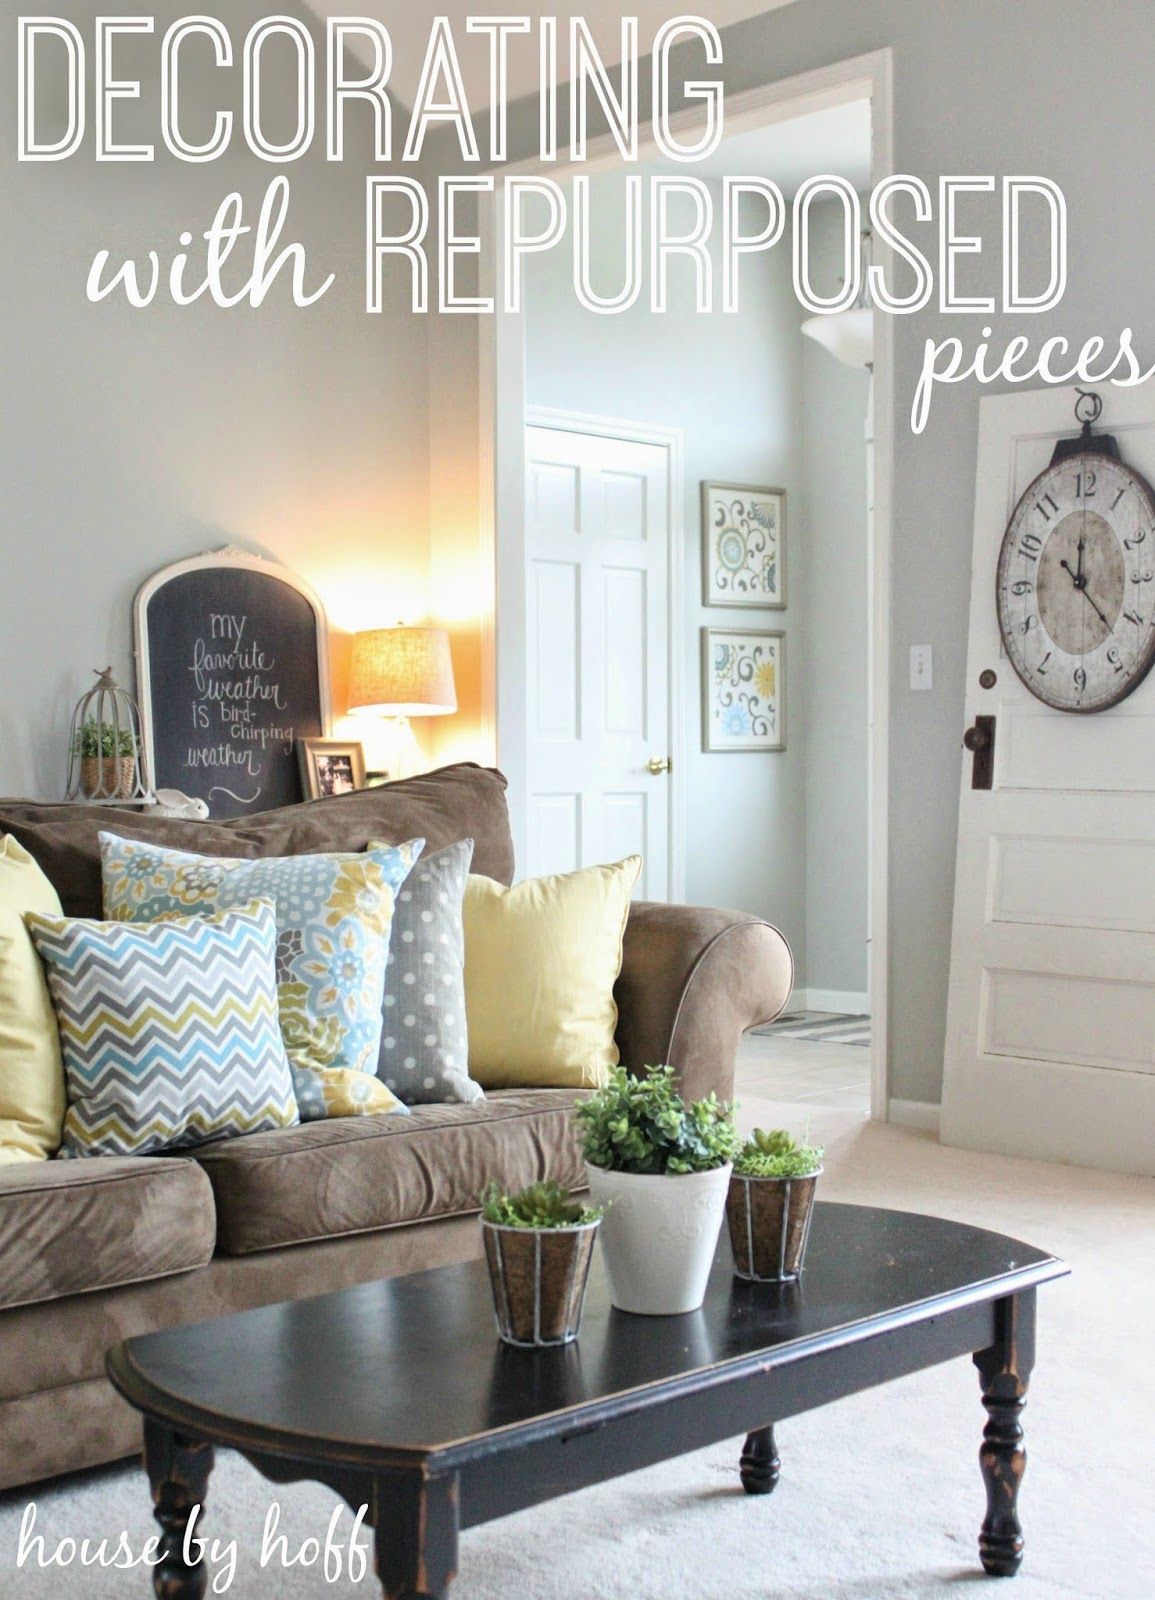 how to decorate with repurposed items via housebyhoff.blogspot.com